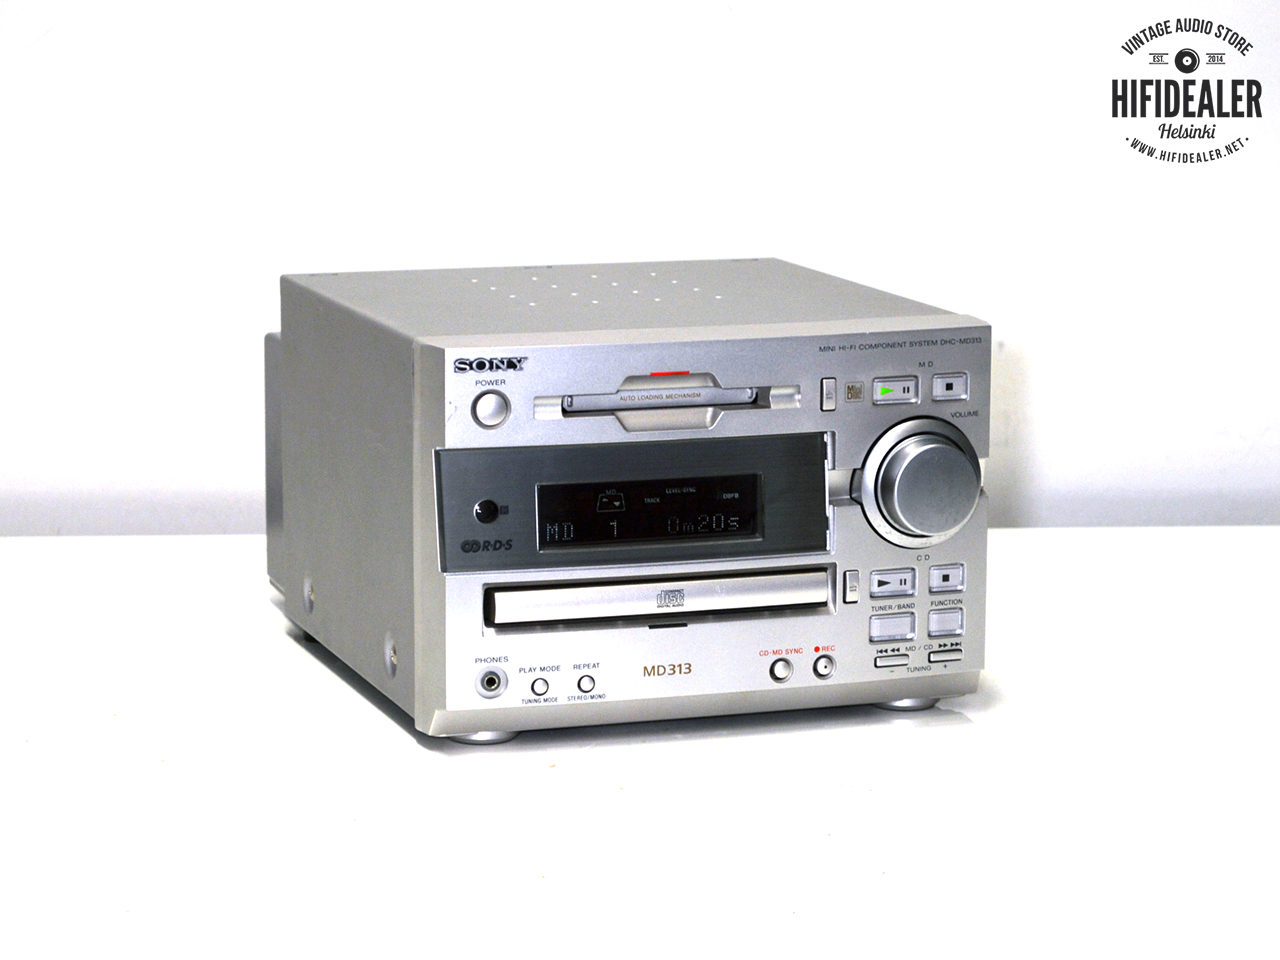 sony-dhc-md313